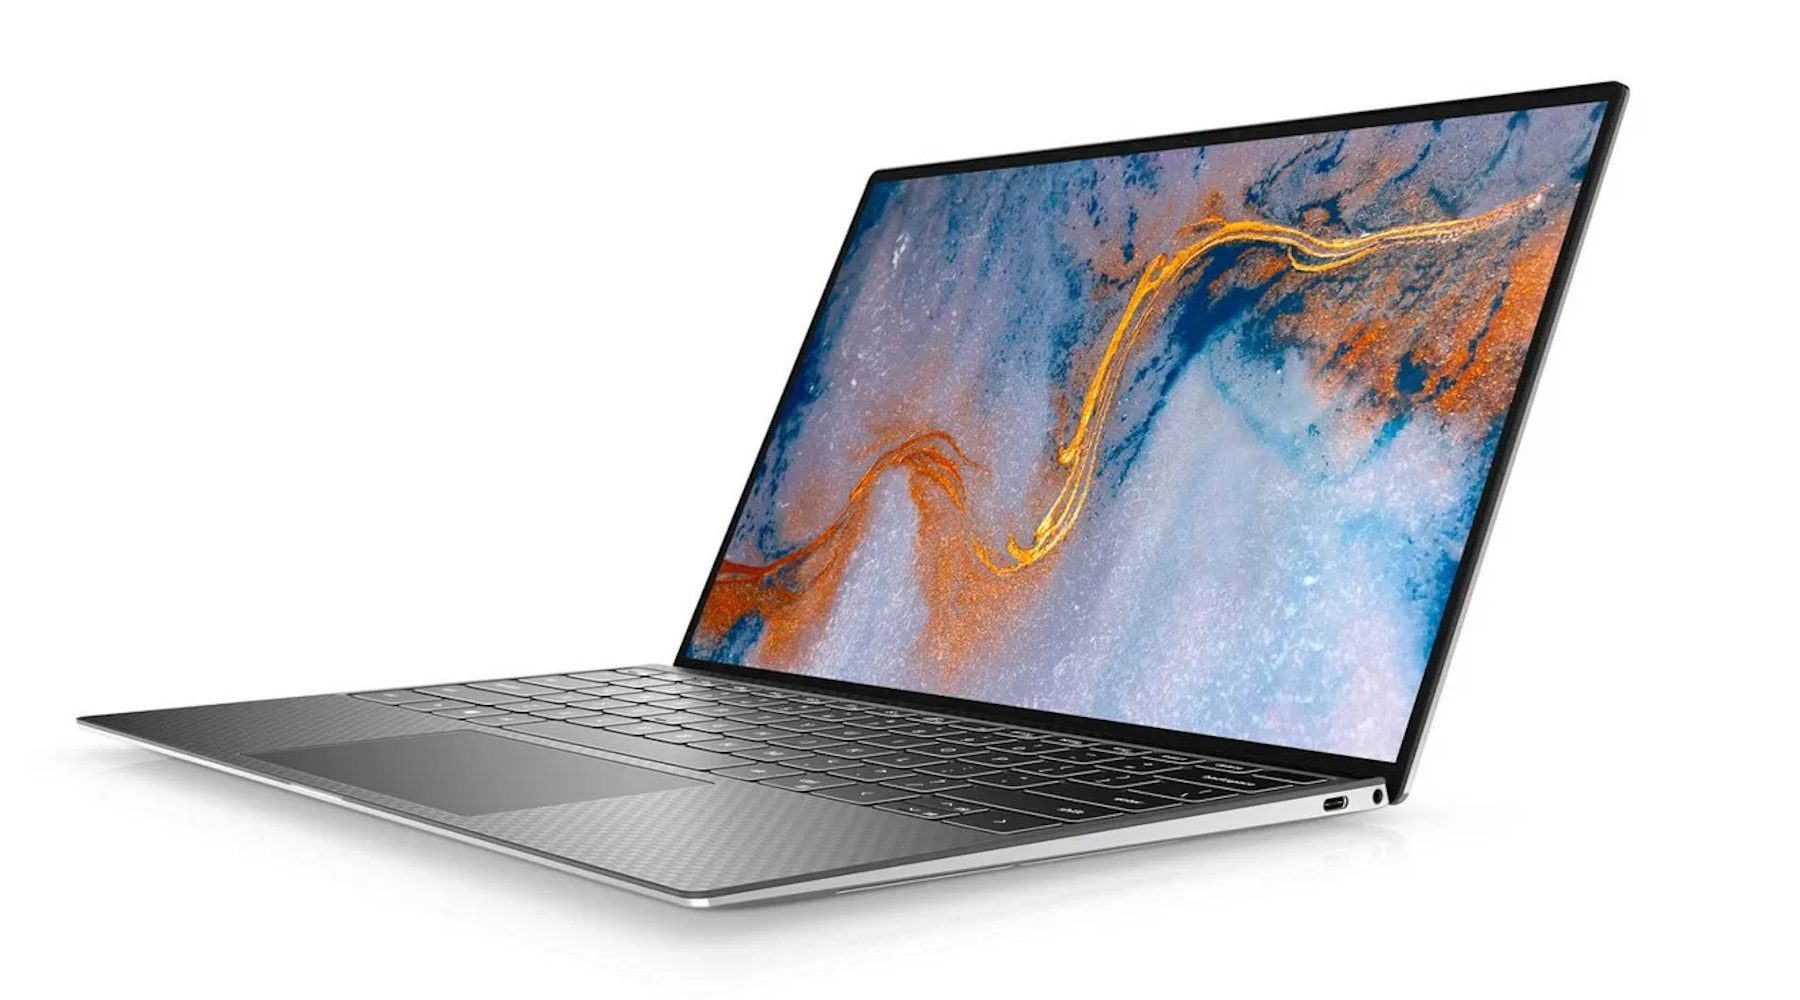 </p><h4>25% off Dell XPS 13 - save $475</h4><p>